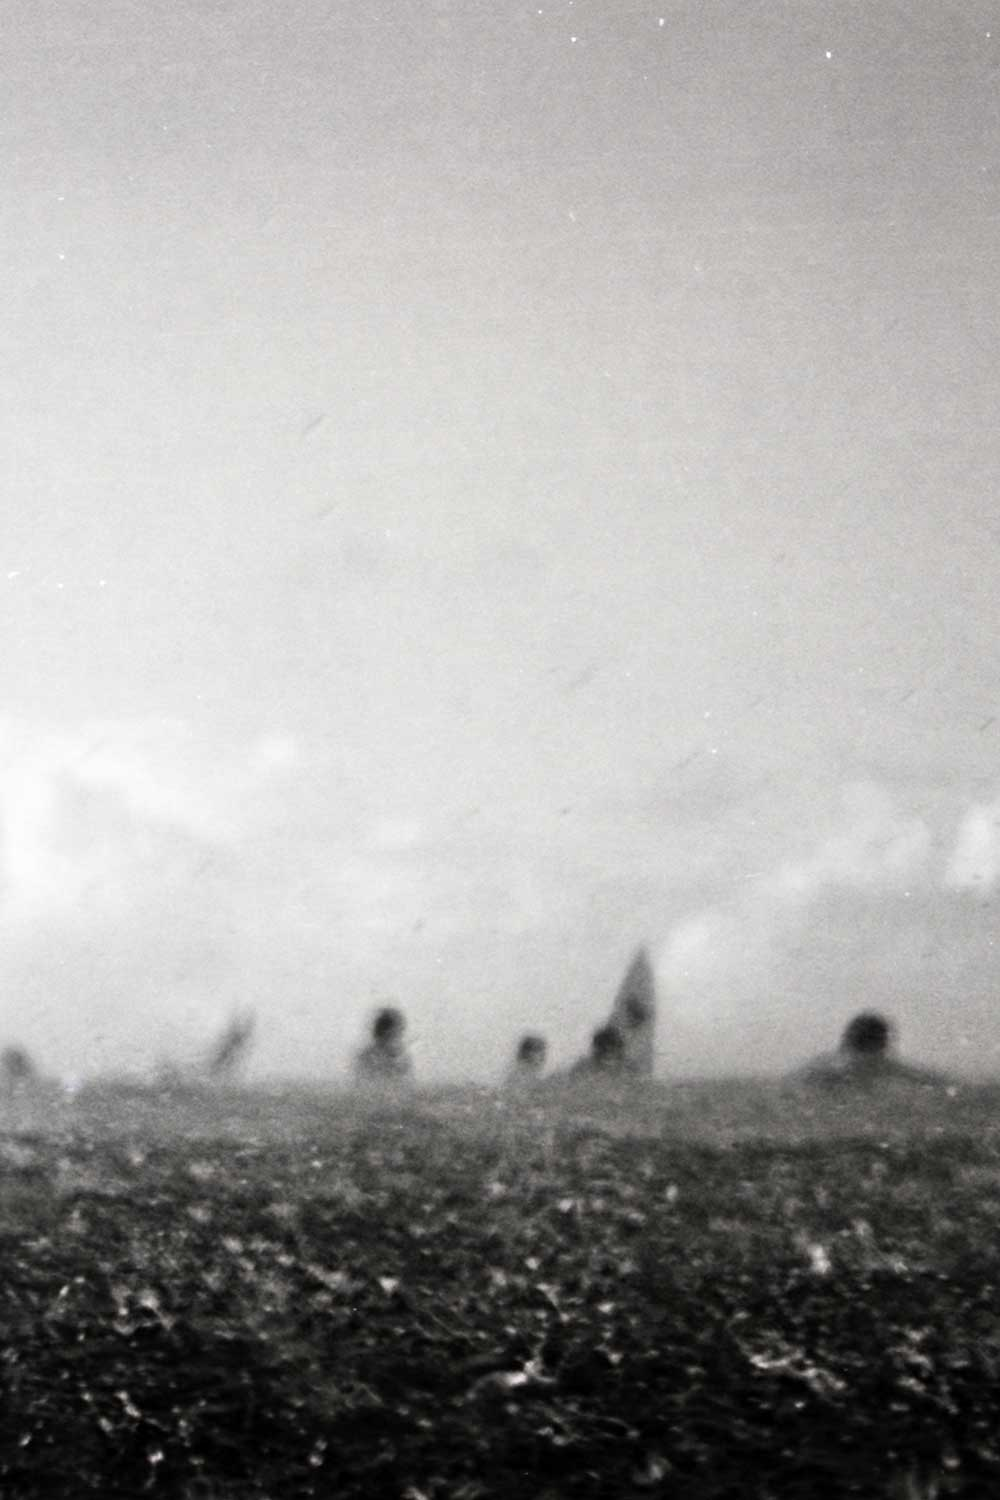 blurry black and white photo of surfers in the ocean